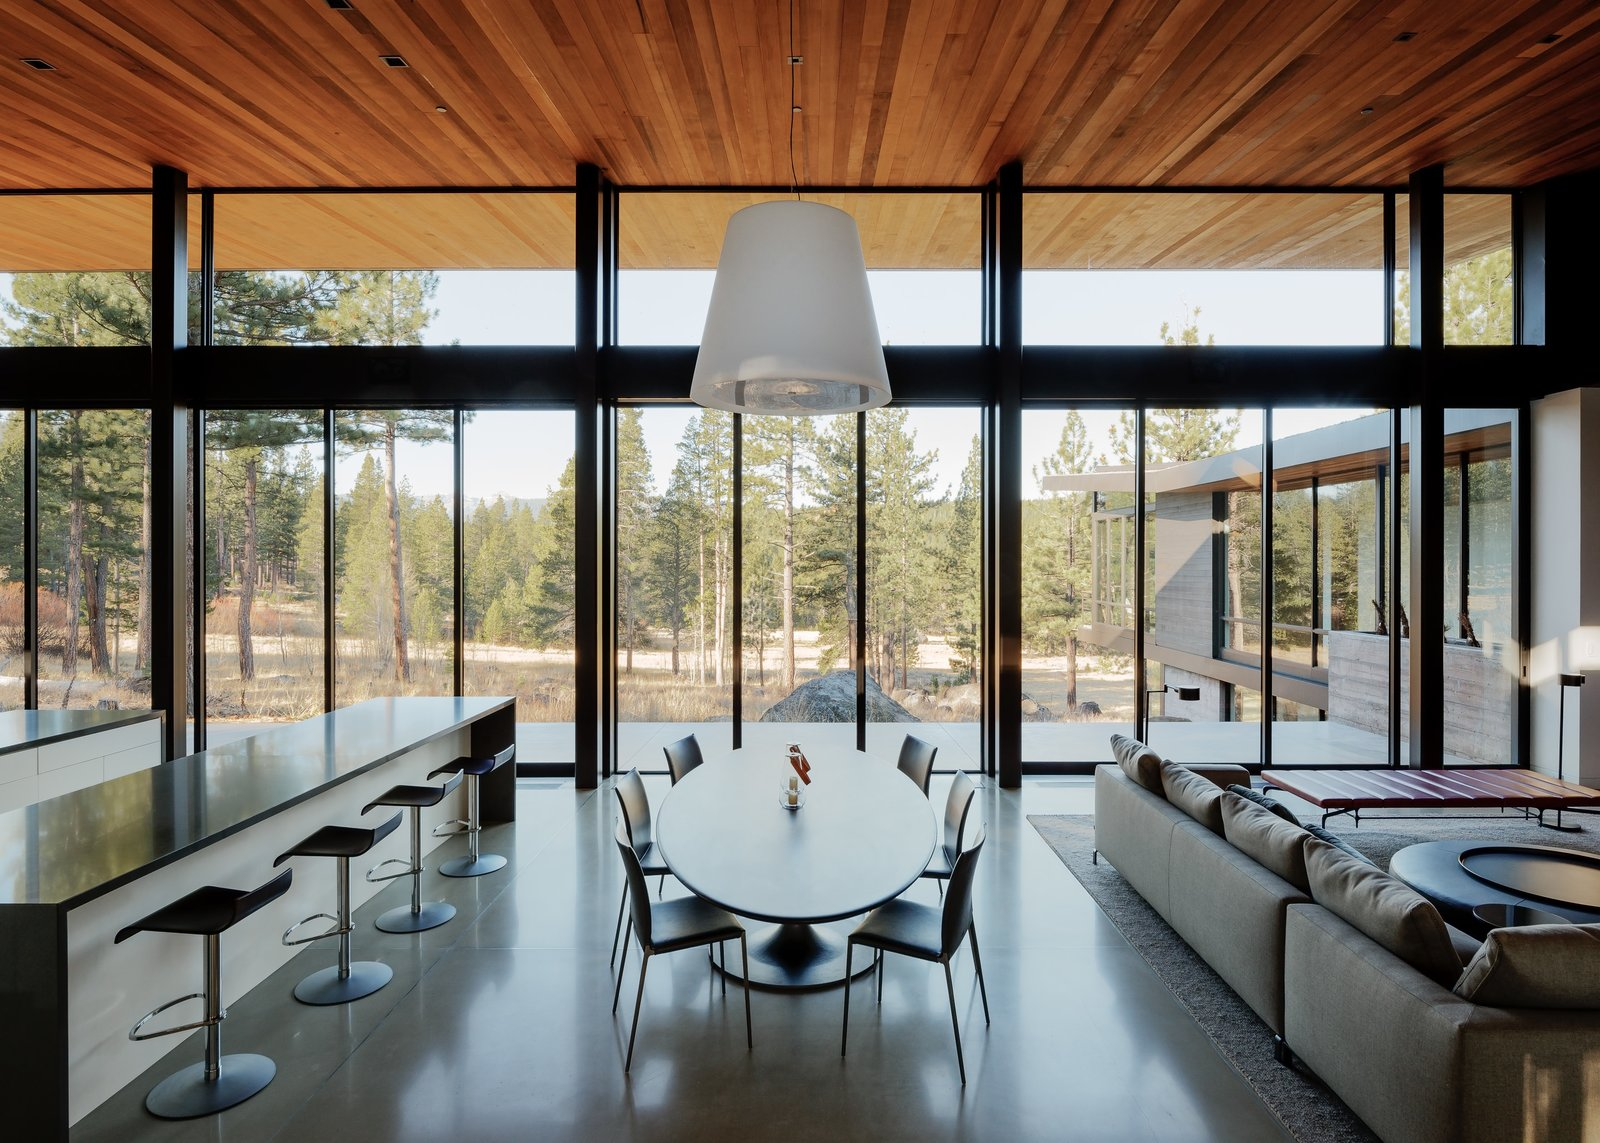 Dining Room Tagged: Dining Room, Pendant Lighting, Concrete Floor, Table, Chair, and Stools. Martis Camp Residence 1 by John Maniscalco Architecture